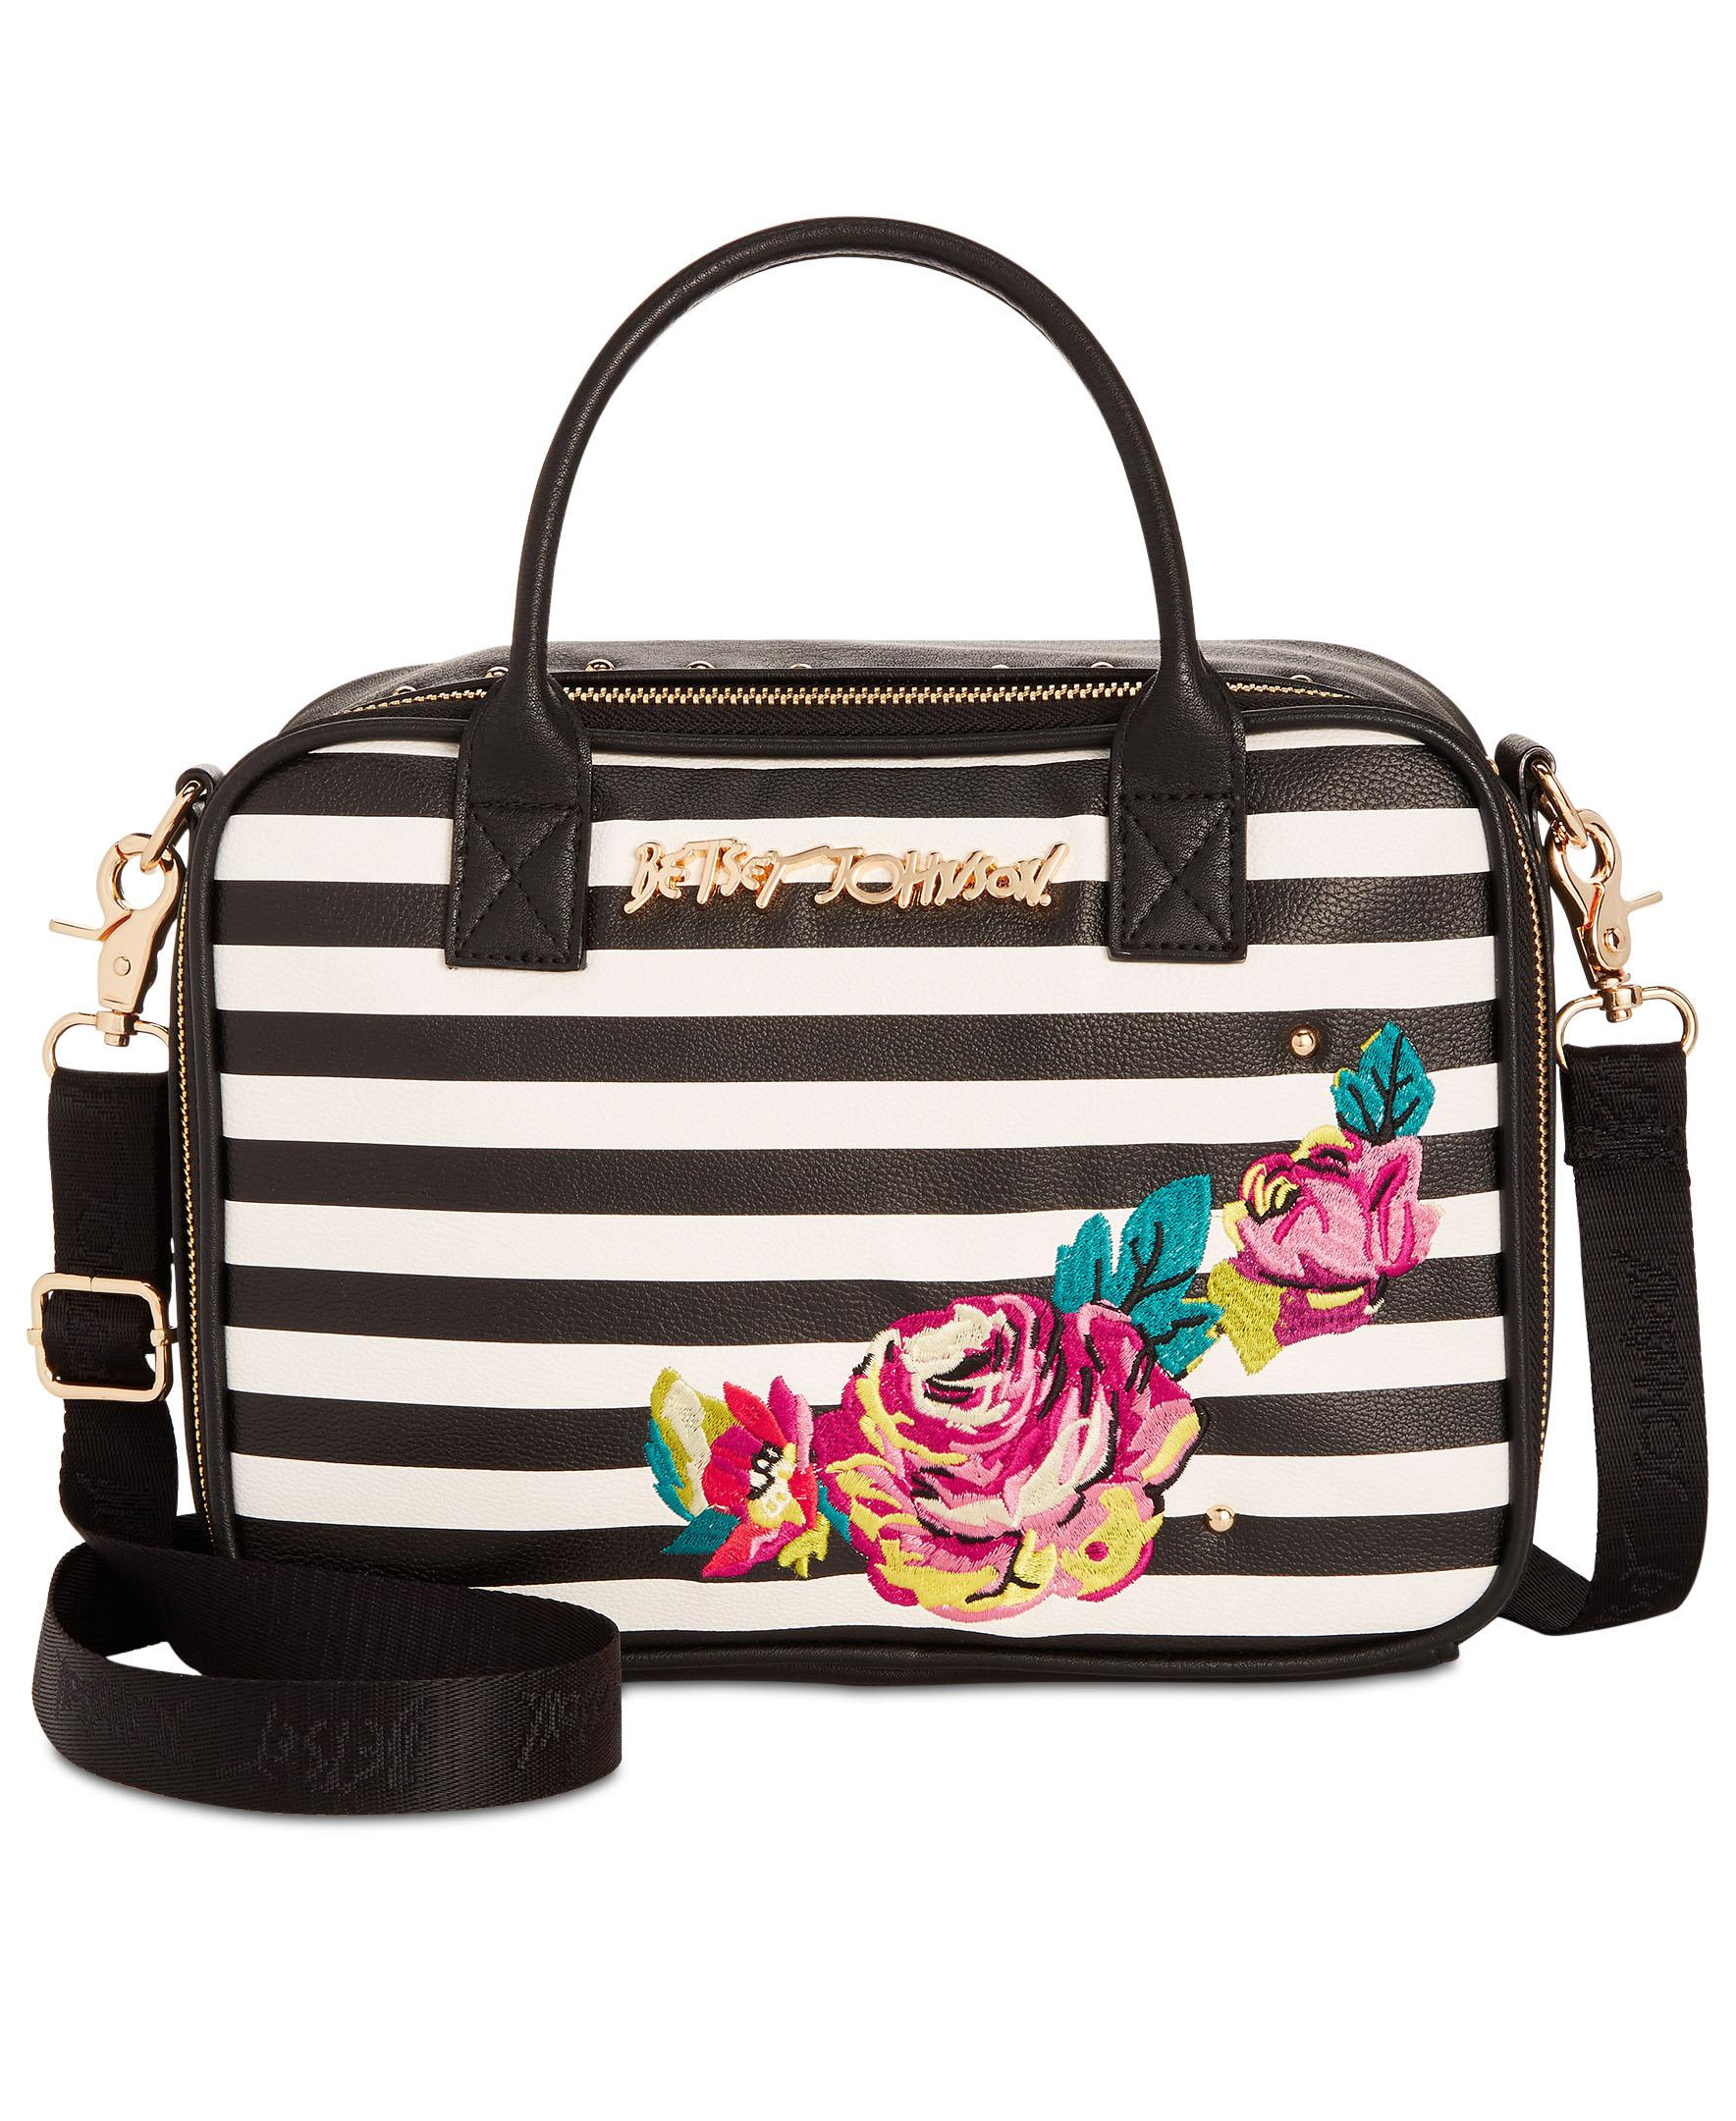 <p>Betsey Johnson Embroidery Small Lunch Tote, a Macy's Exclusive Style // Price: $34.80 // (Image: Macy's // Macys.com){&amp;nbsp;}</p>